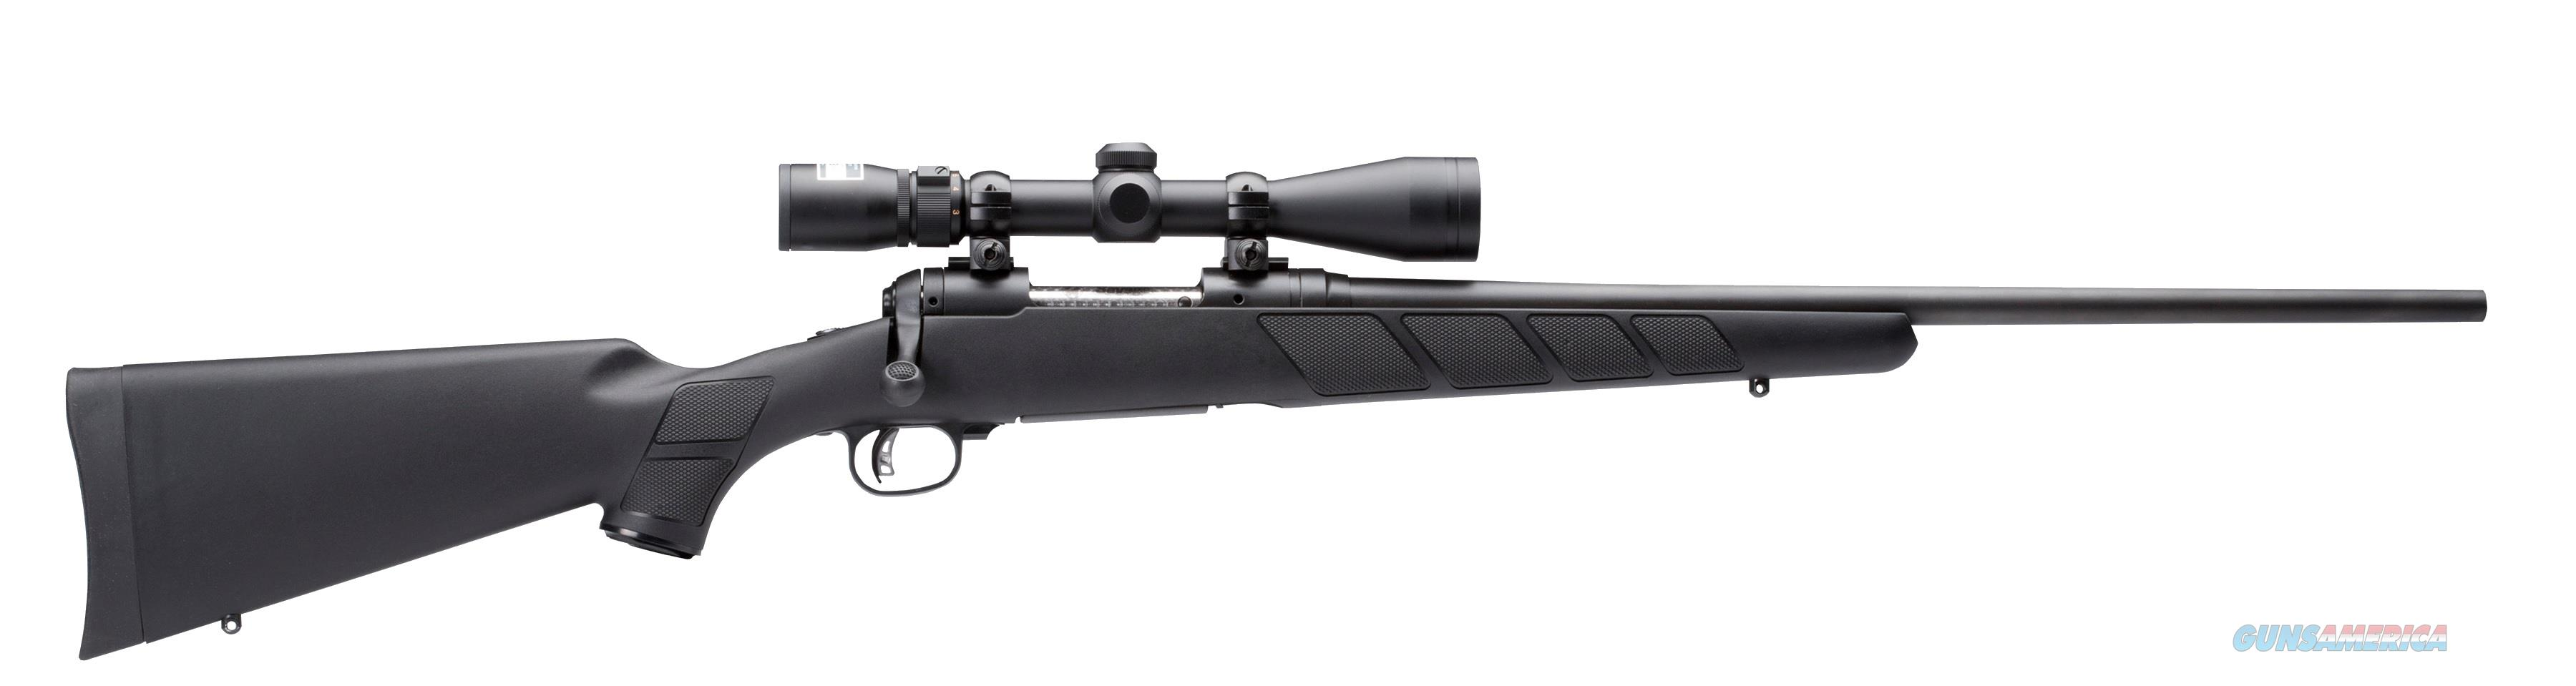 Savage 11/111 Trophy Hunter XP .30-06 Springfield NIKON Scope 19690   Guns > Rifles > Savage Rifles > 11/111